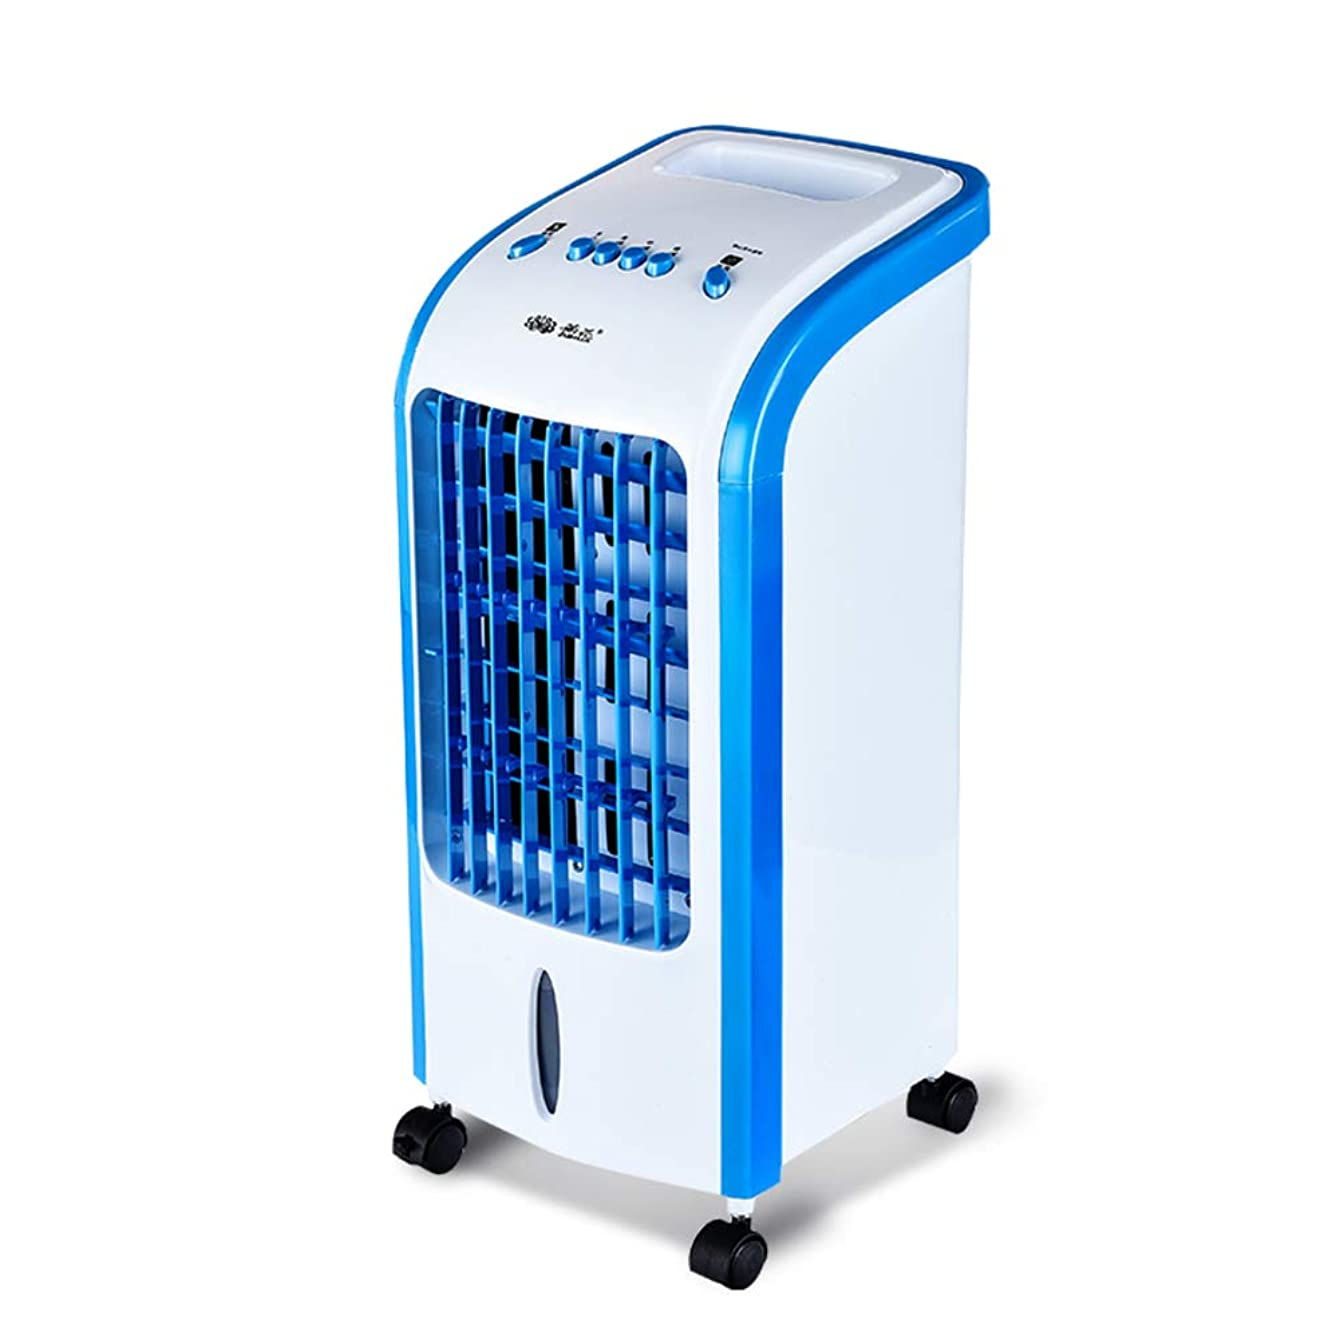 JiaQi Home Air Cooler,Air Cooler Fan,Portable Air Conditioner Fan Office Cooling Personal-Mechanical A 30x27x59cm(12x11x23inch)